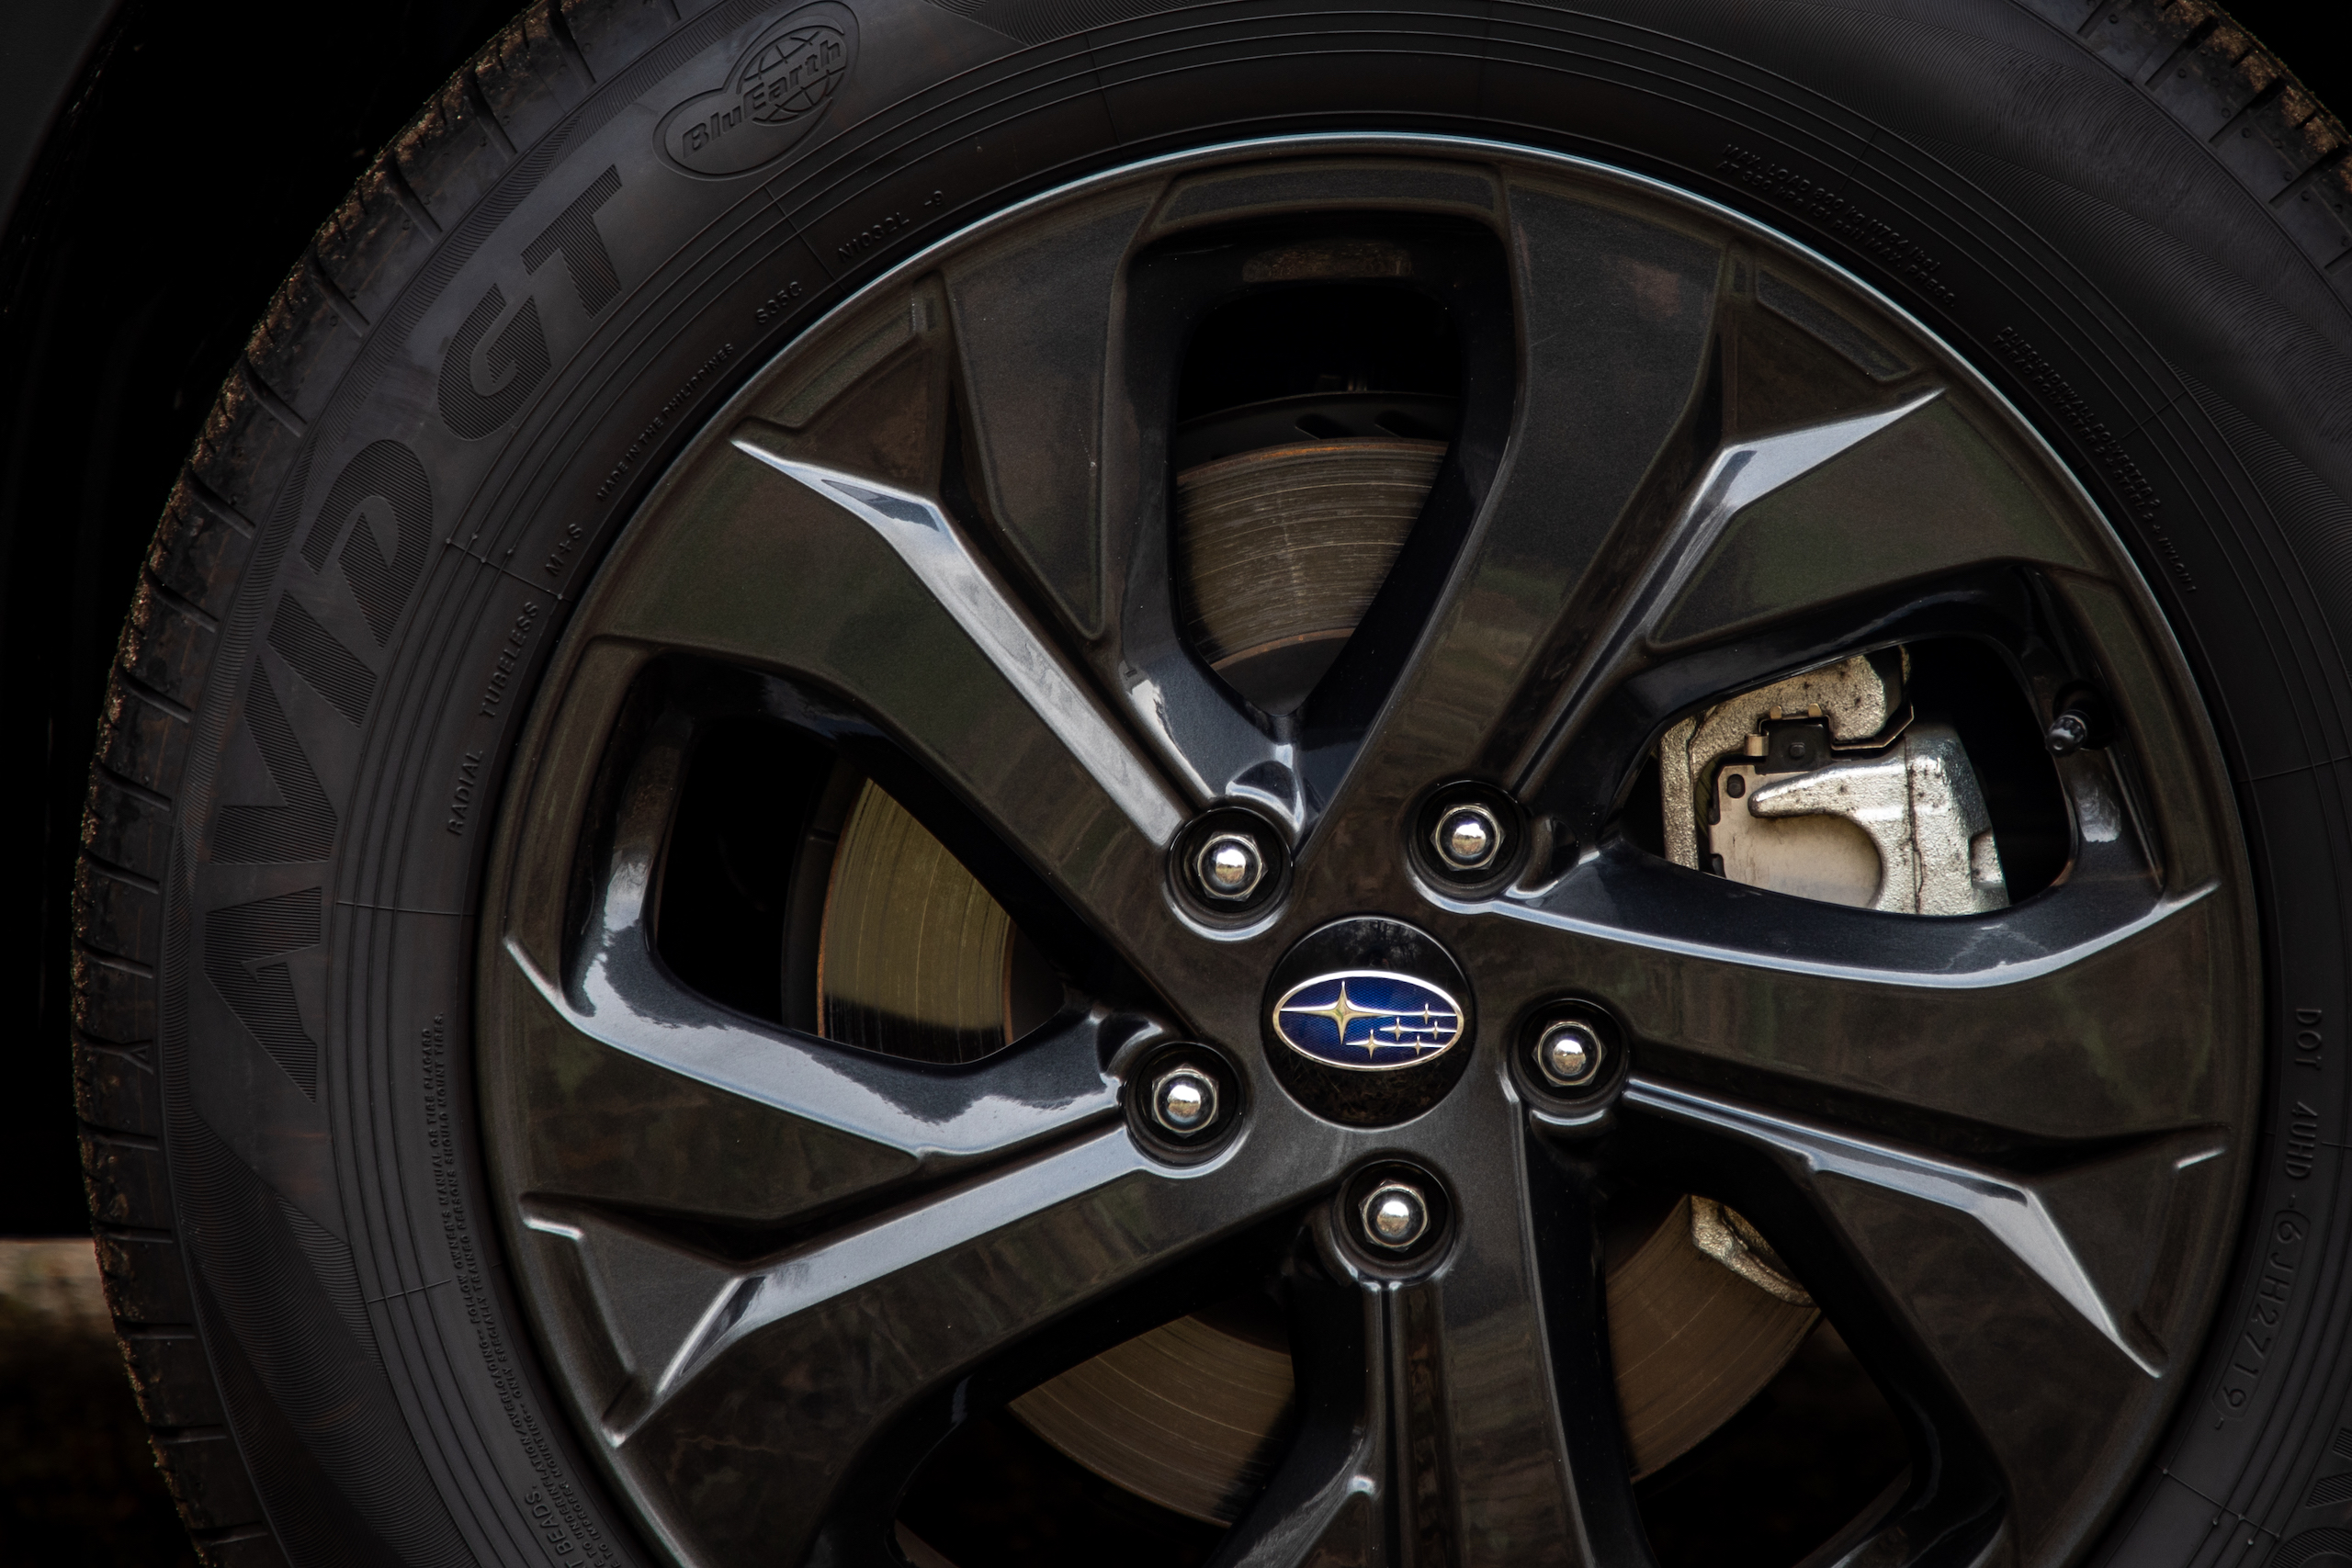 Subaru Outback wheel detail